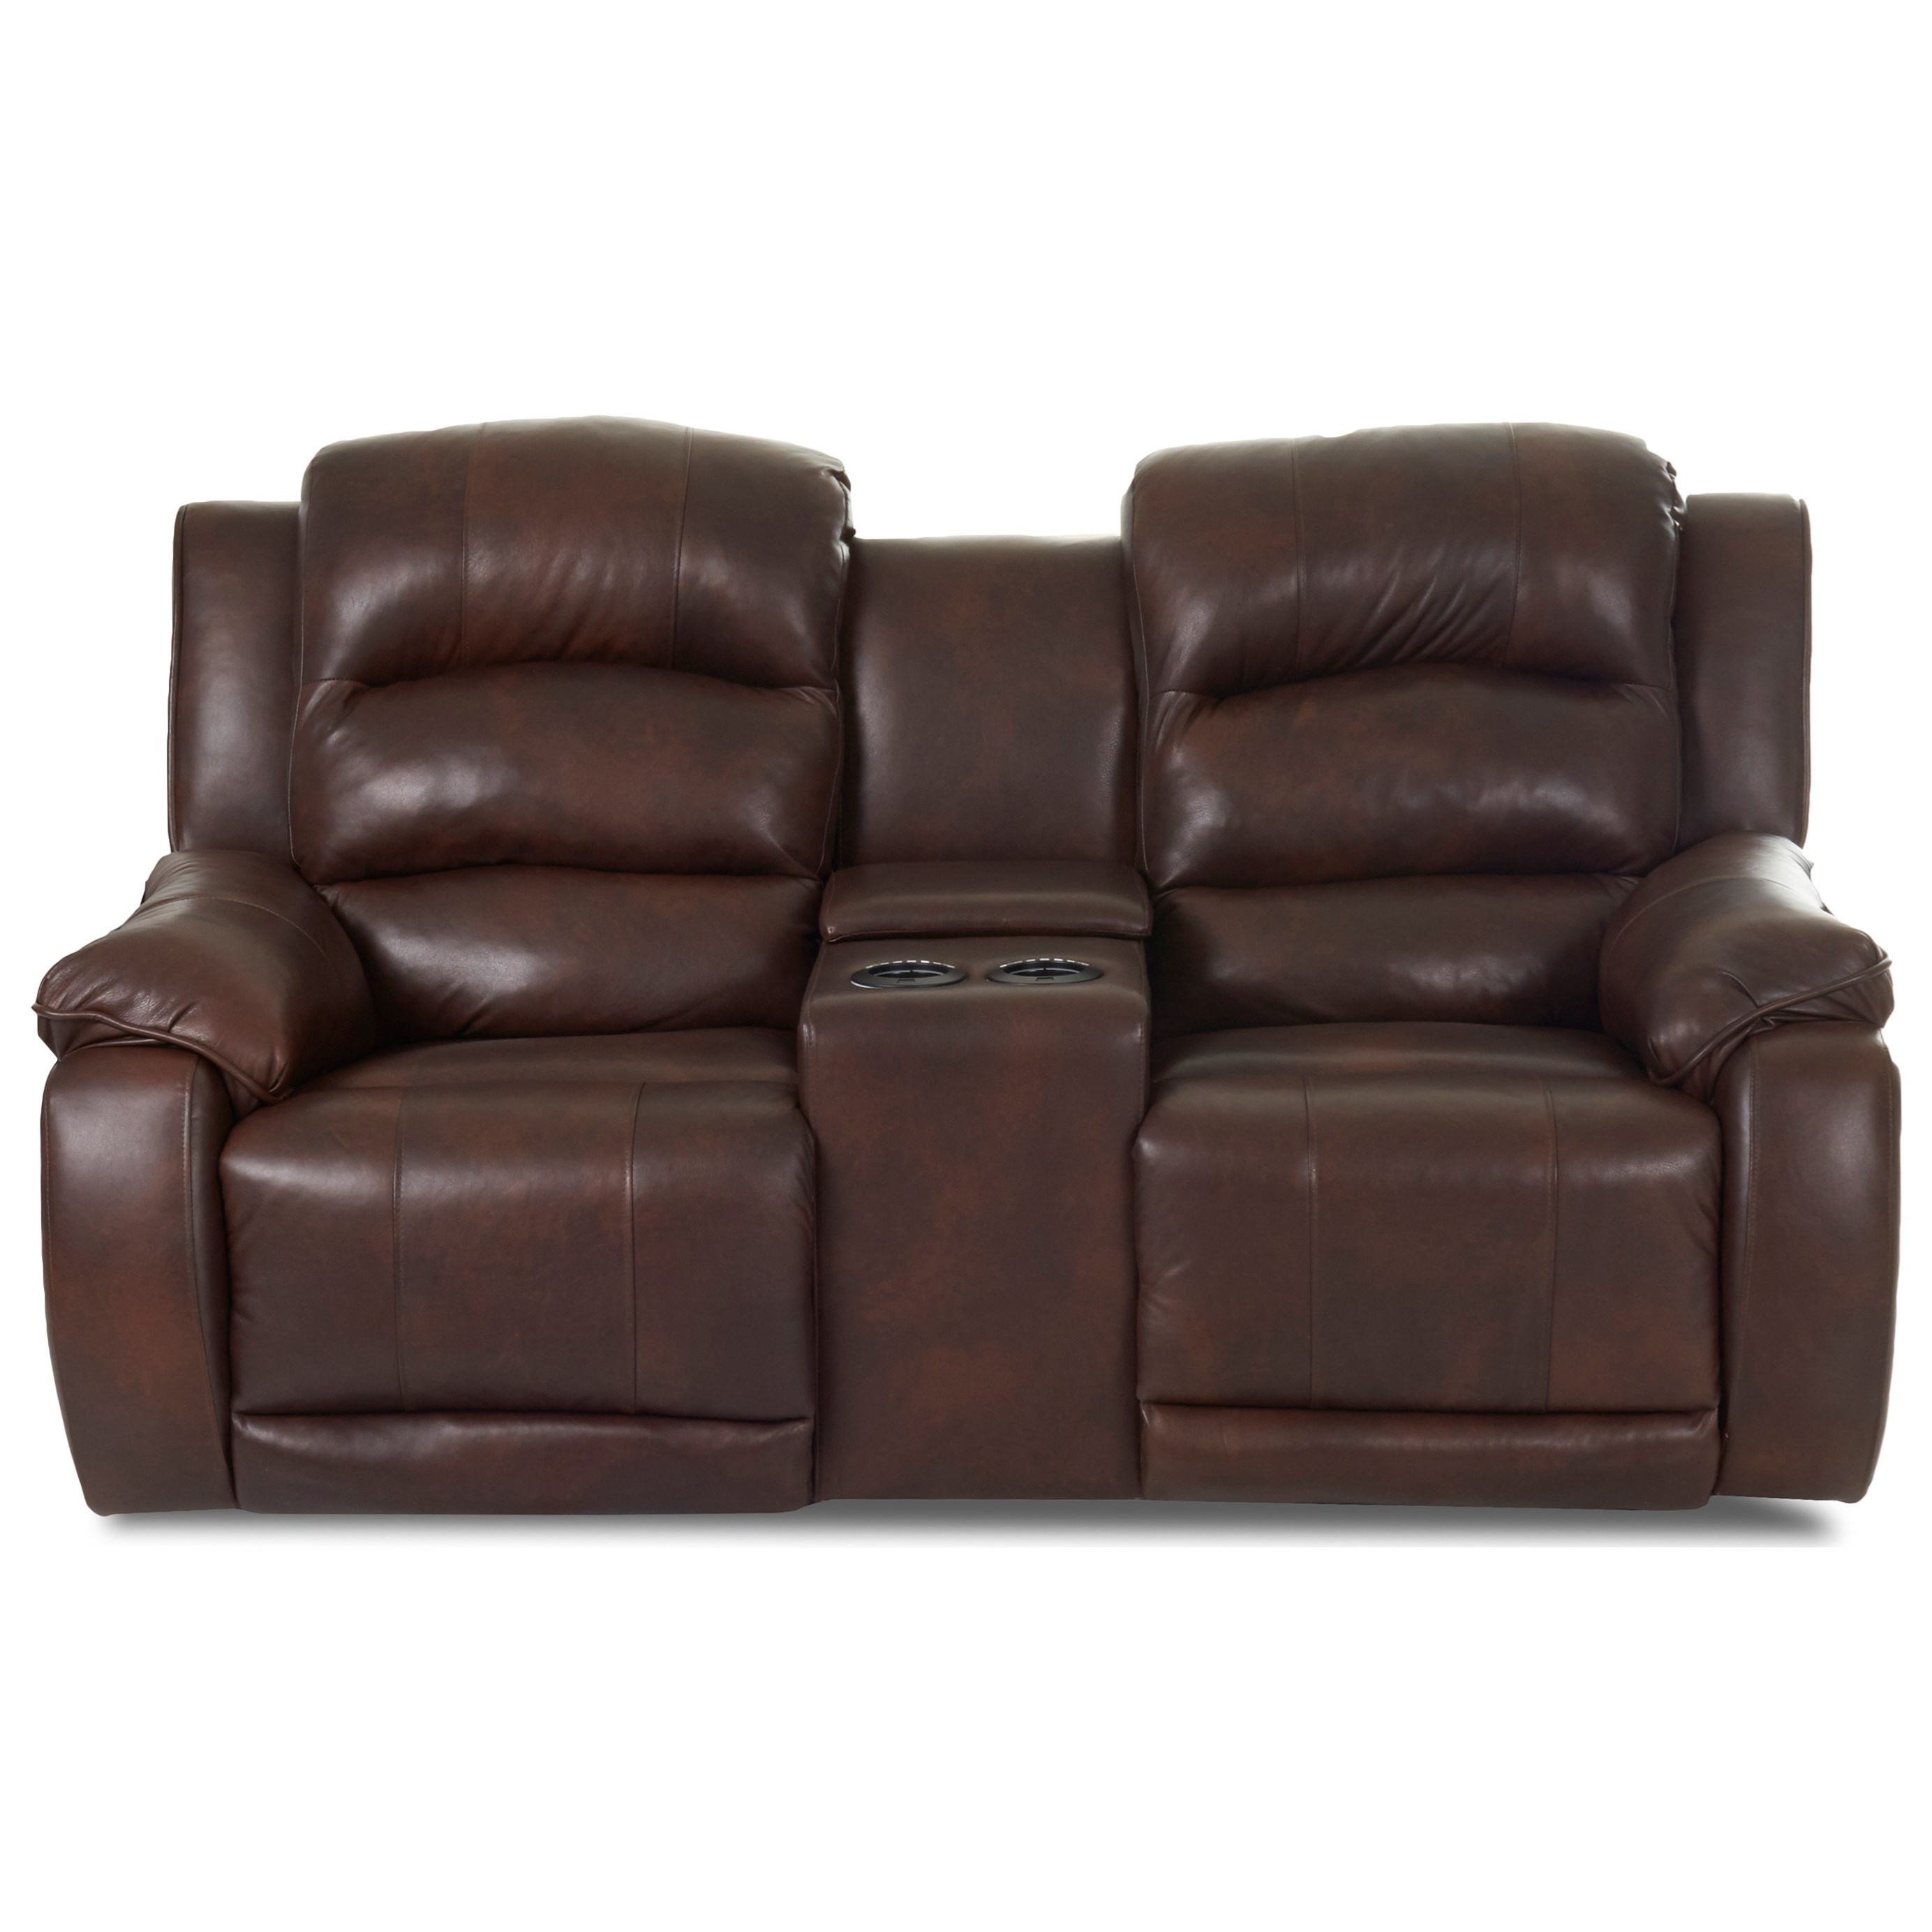 royal bernie sofa flush recliners power with motion southern reclining twin recliner headrest